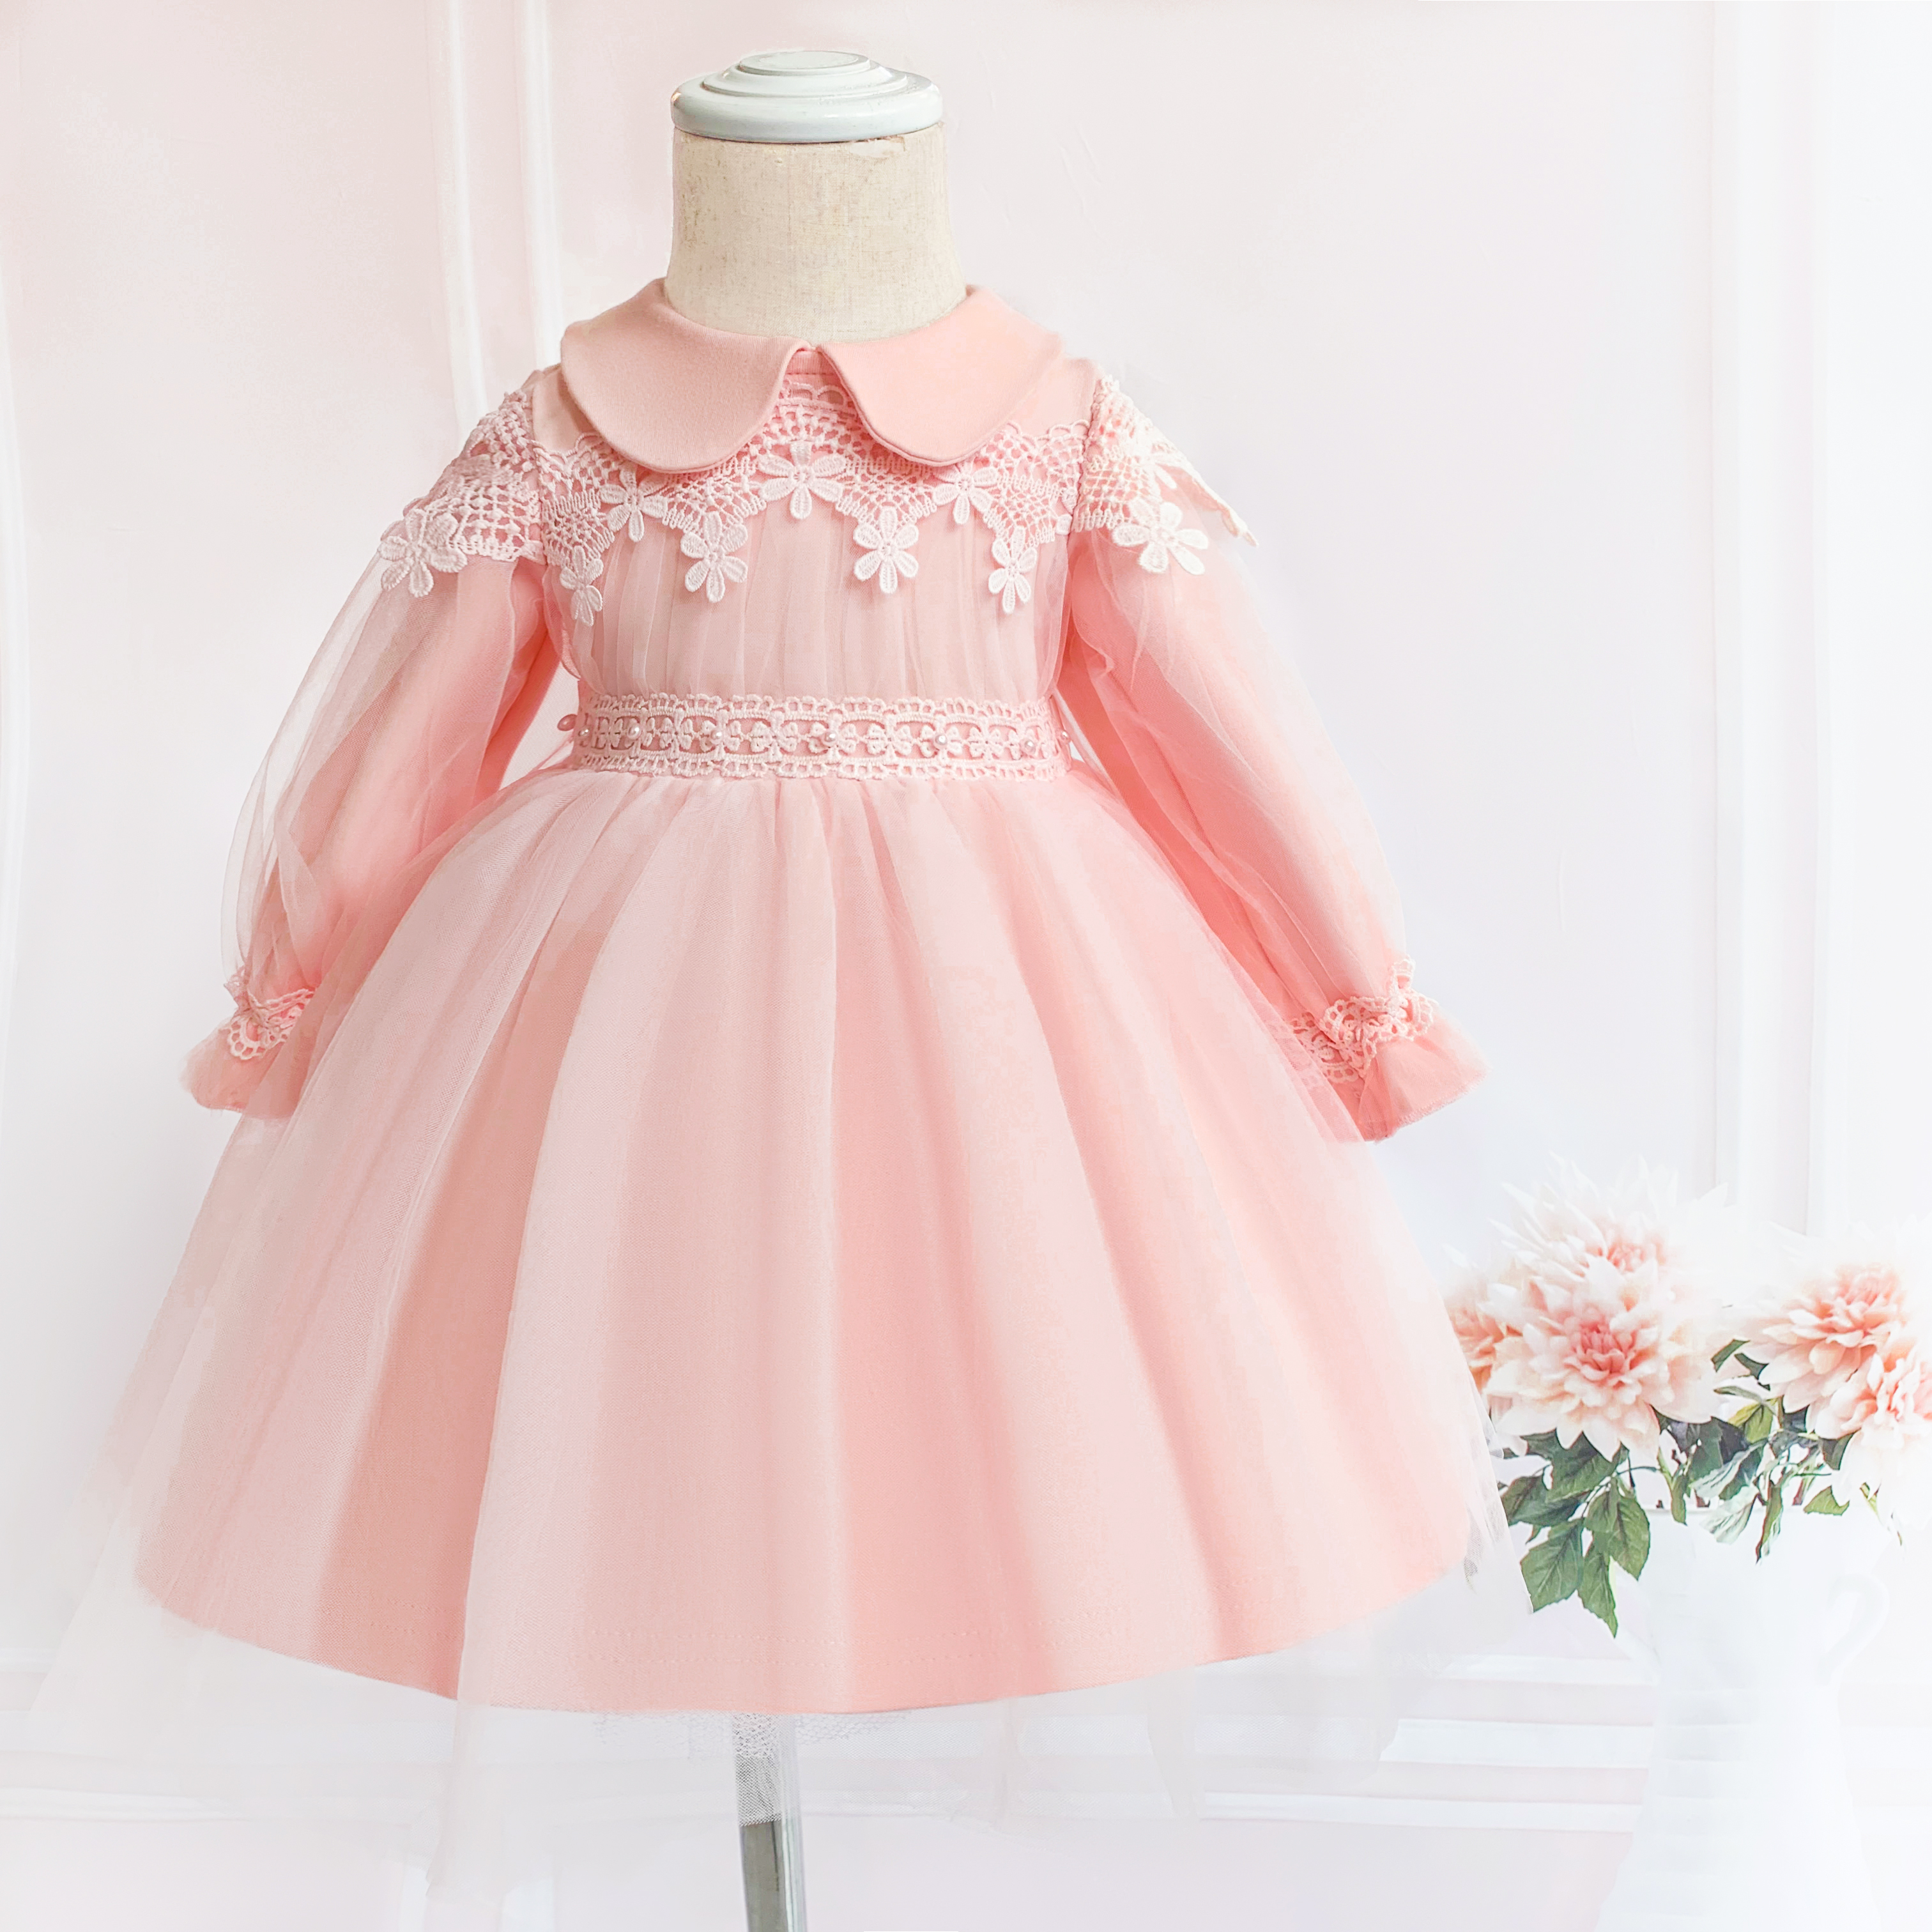 US $5.5 5% OFFPink Lace Baby Christening Dress Long Sleeve 5st Birthday  Girl Party Princess Prom Dress Infant Girl Baptism Baby Dress